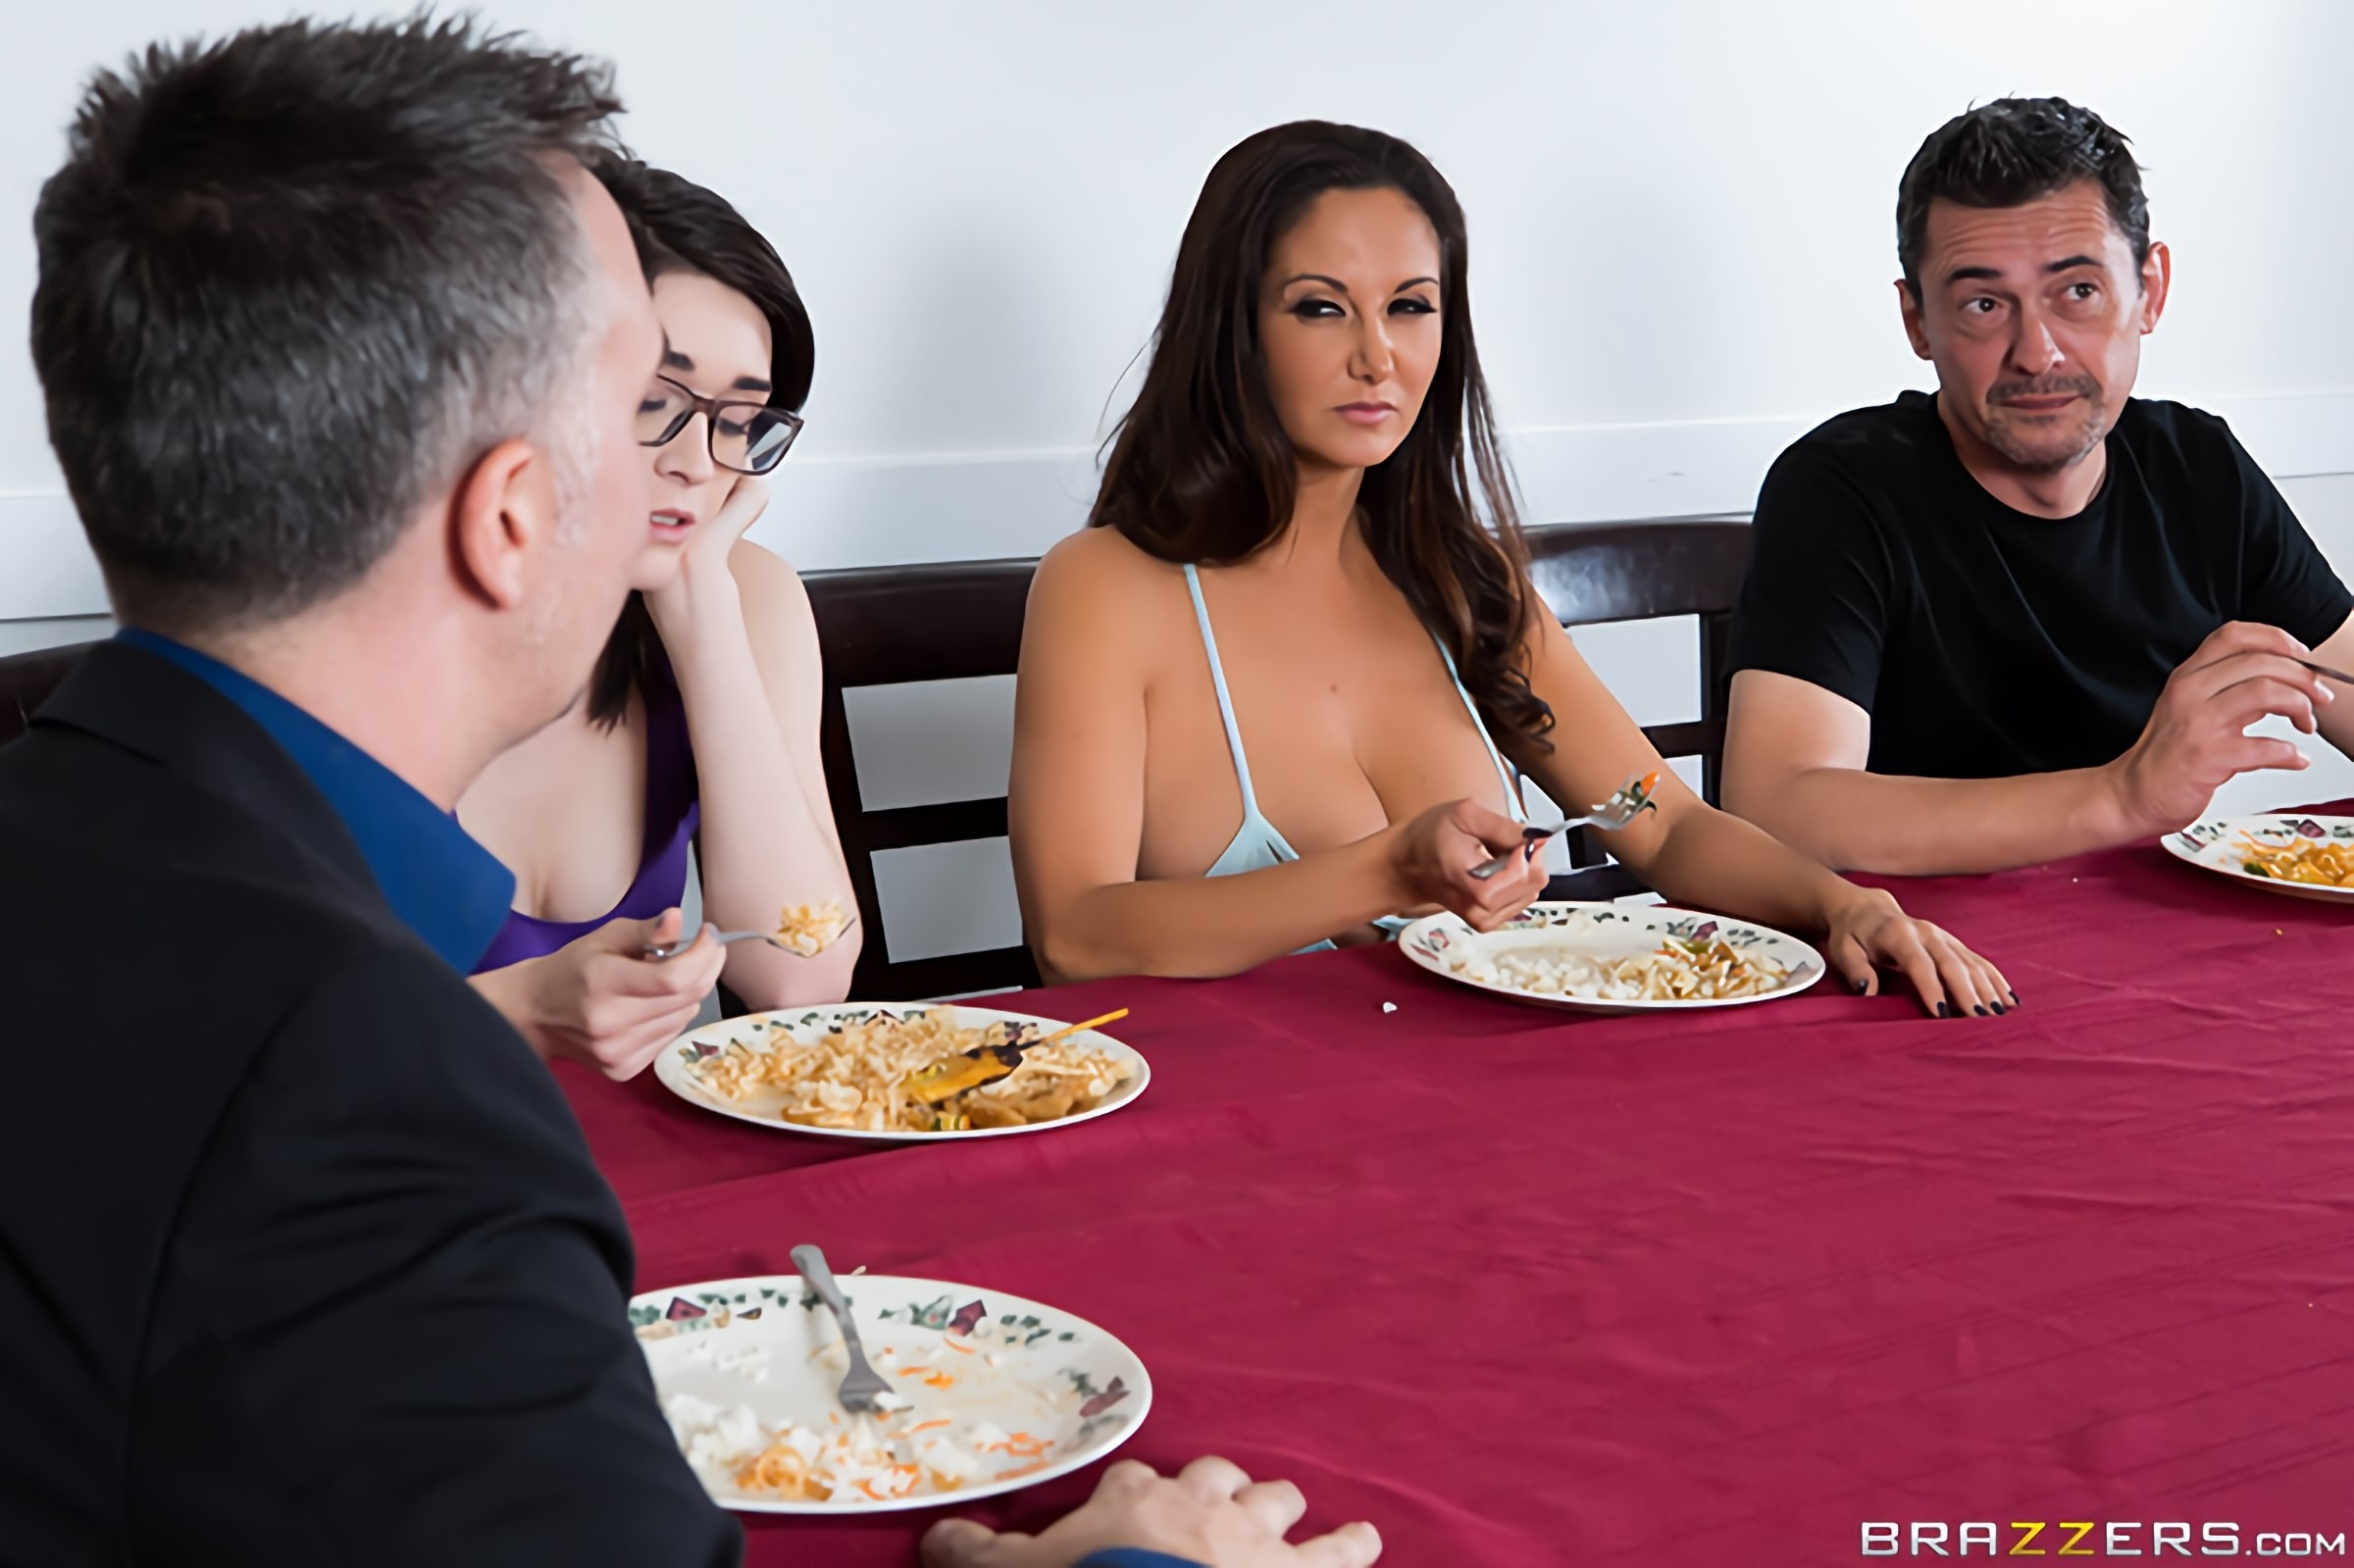 Brazzers 'Stay Away From My Daughter- Part 2' starring Ava Addams (Photo 1)